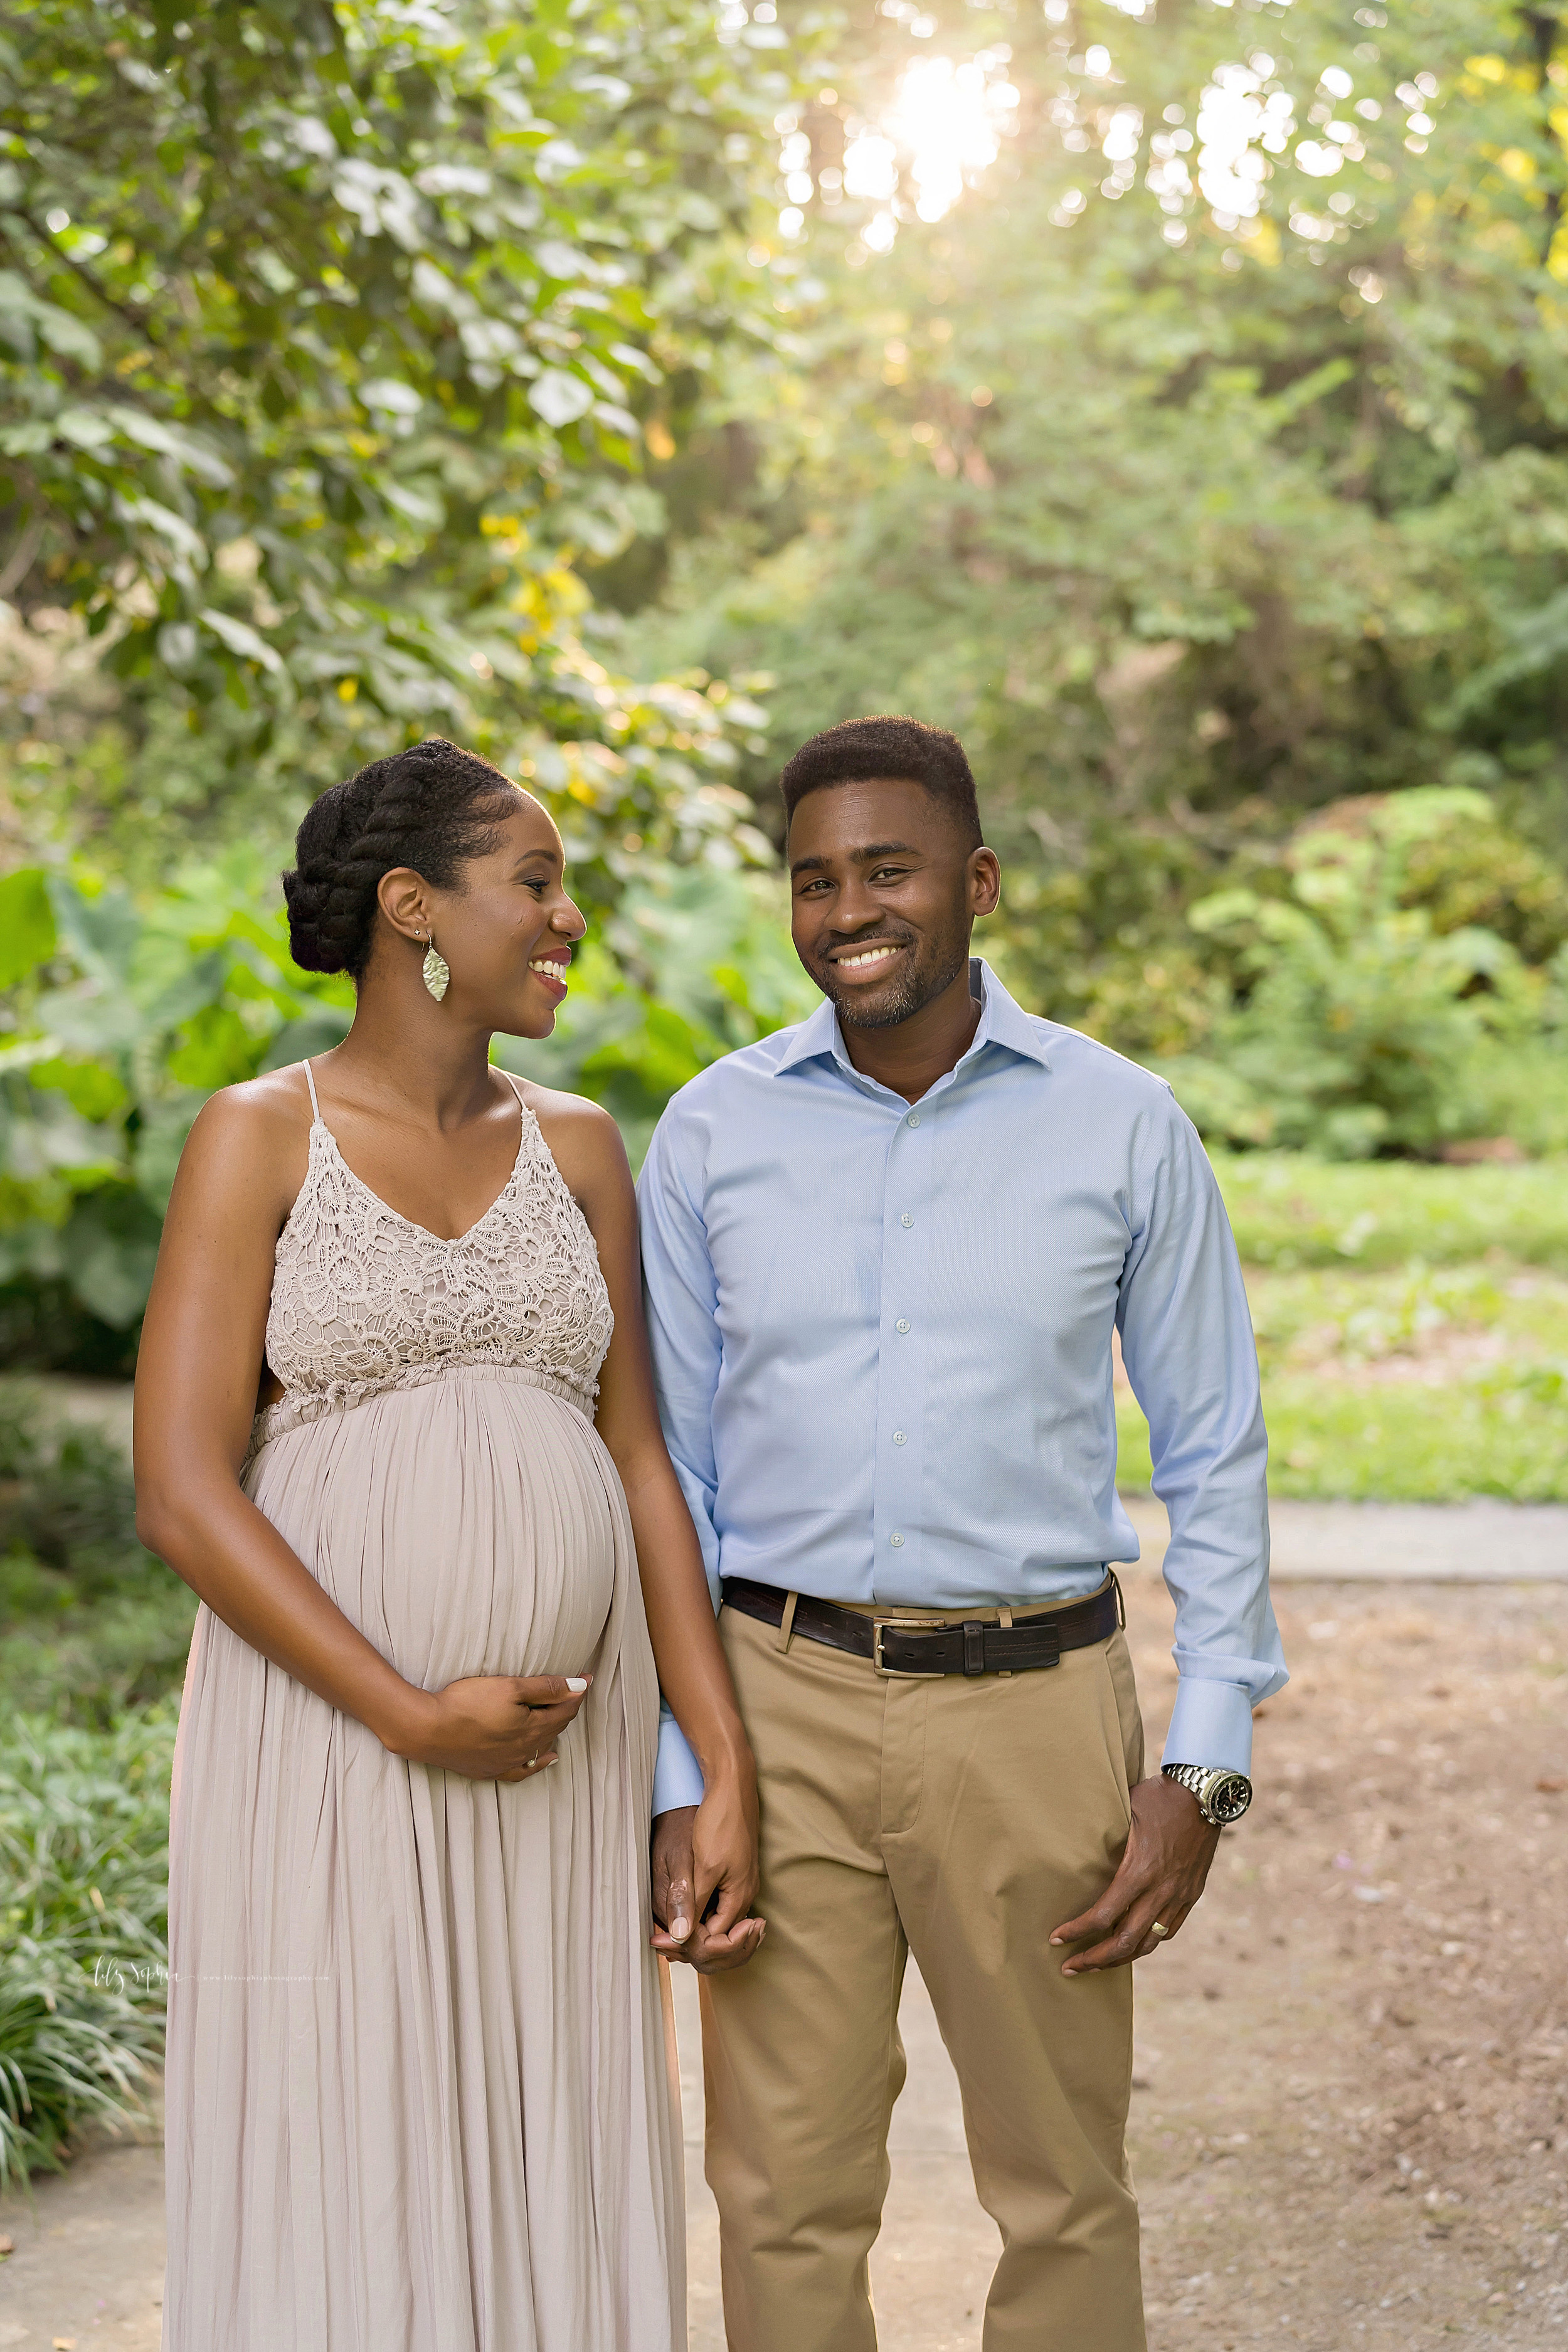 Maternity photo of a happy African-American couple as they stand hand in hand in an Atlanta garden at sunset.